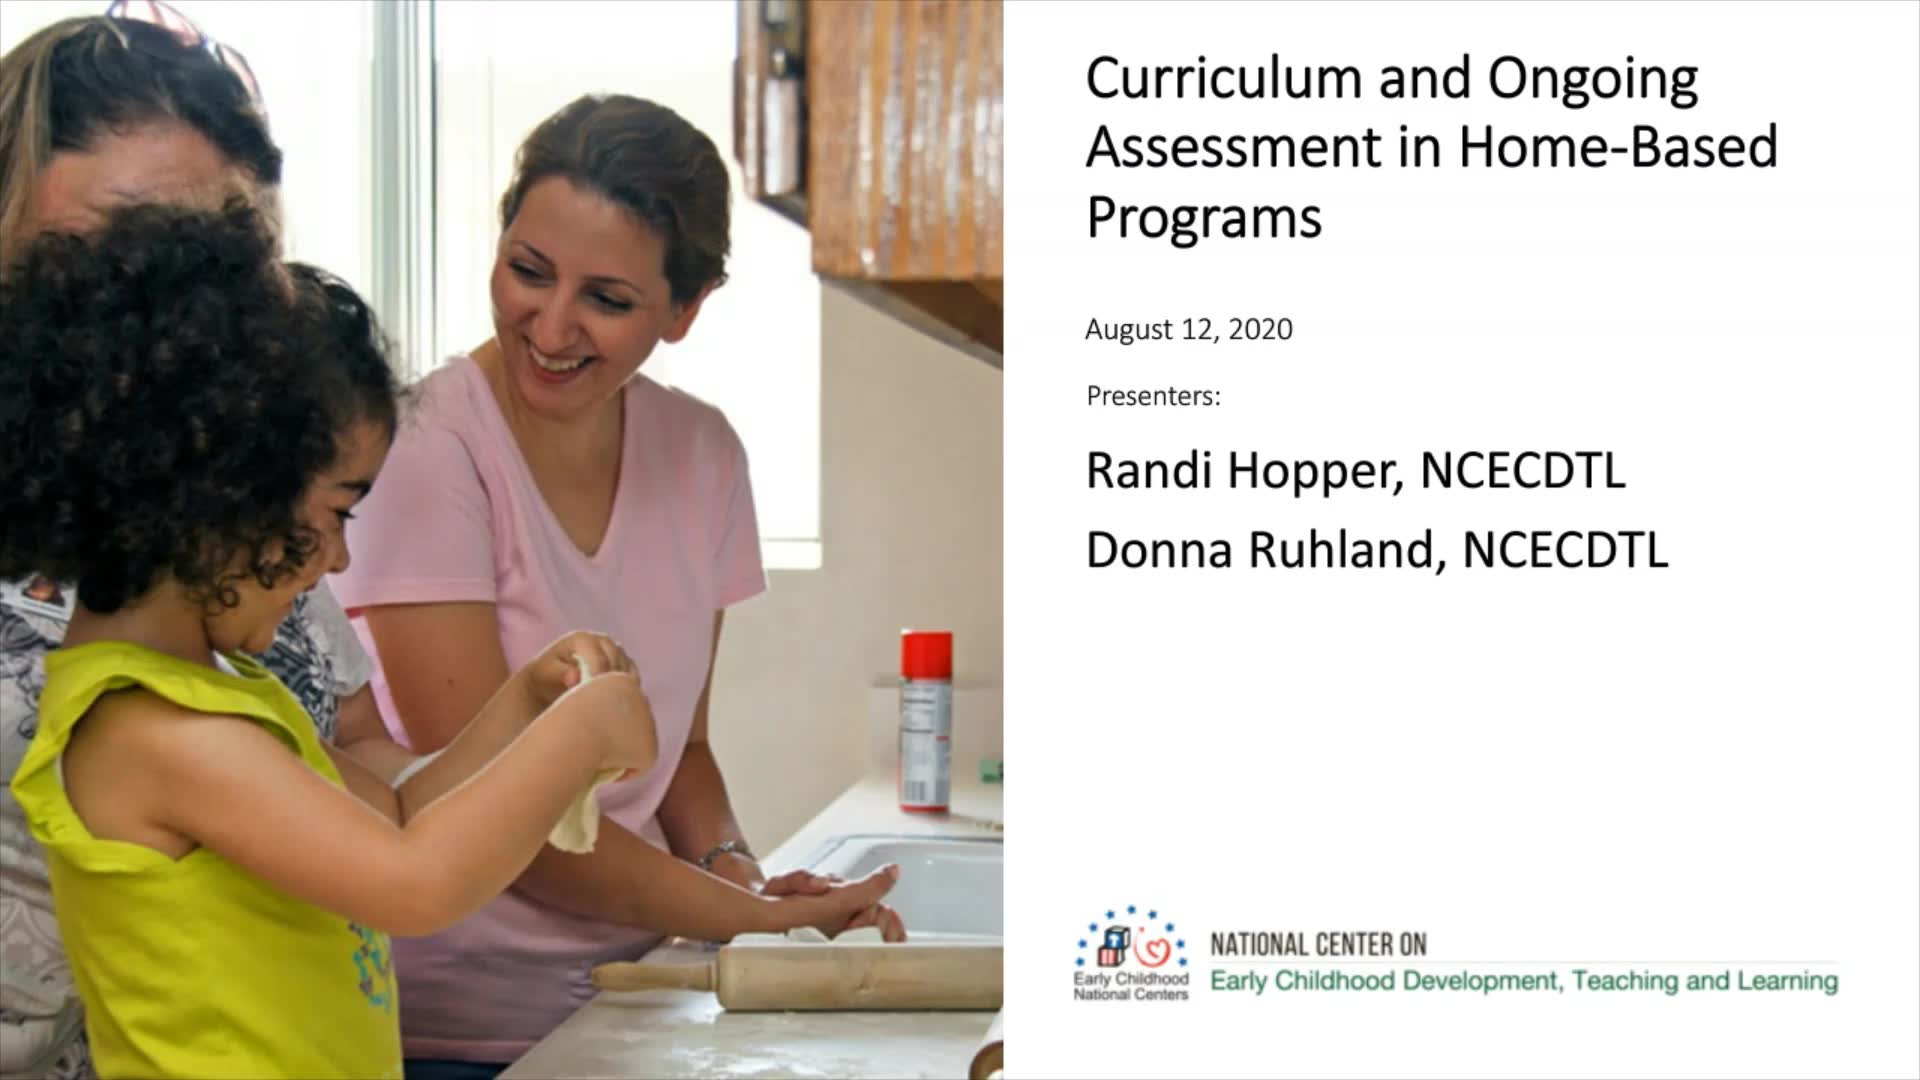 Curriculum and Ongoing Assessment in Home-Based Programs